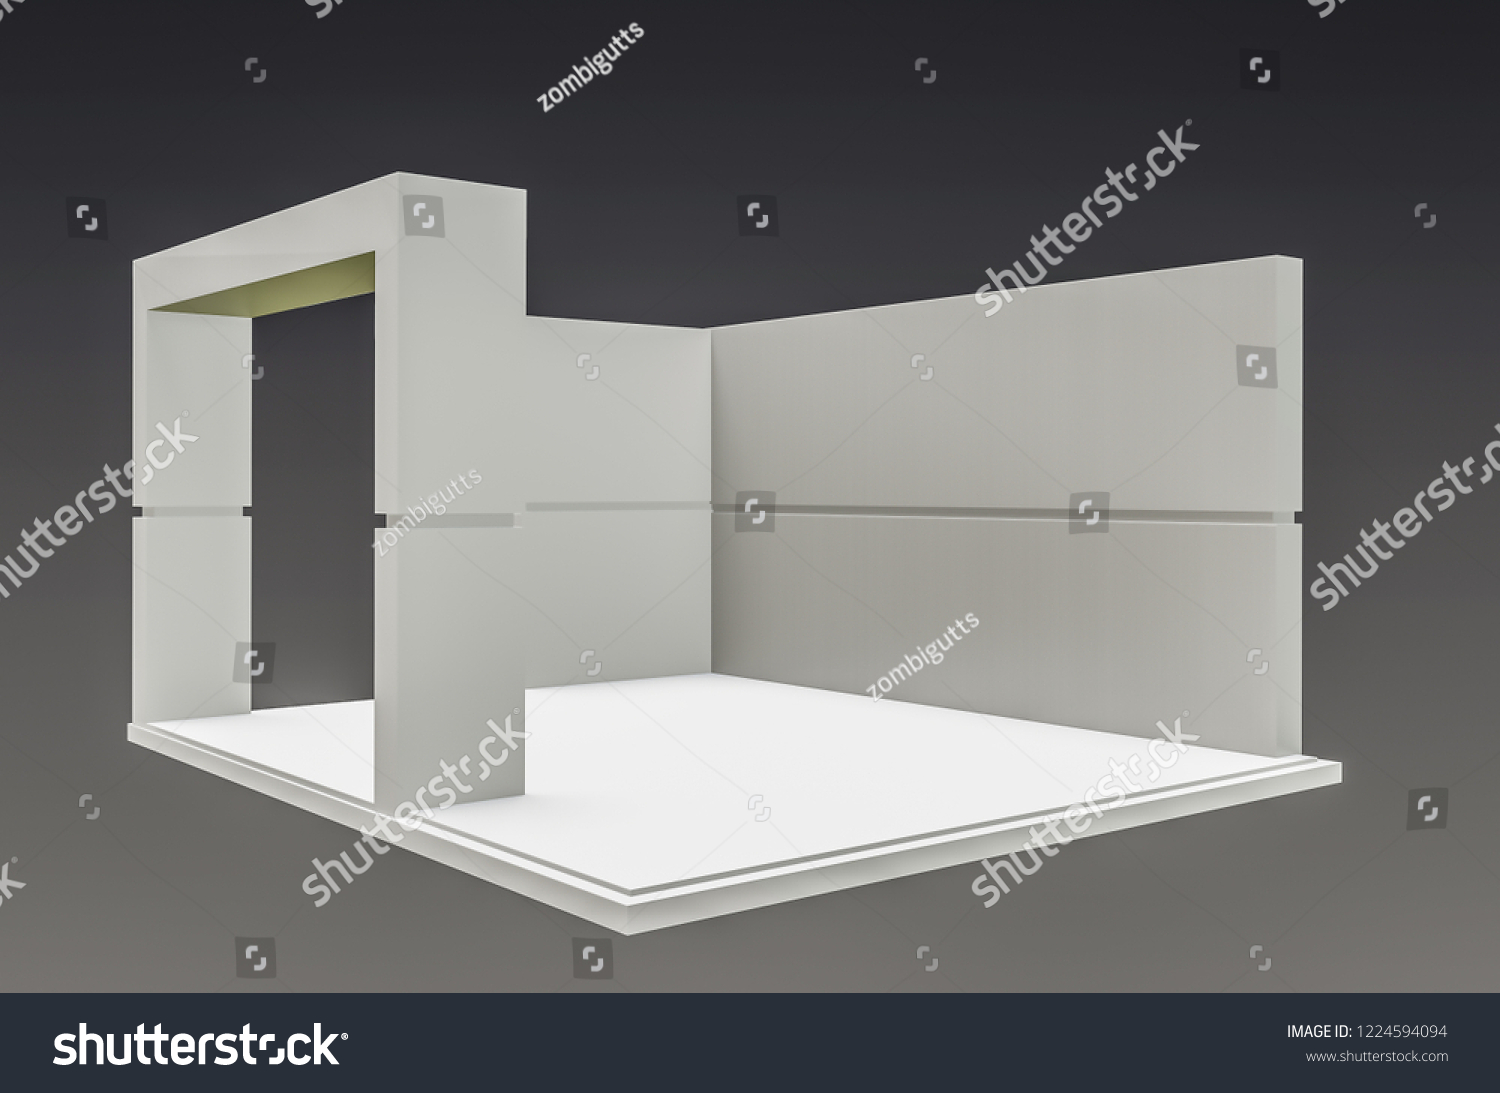 Exhibition Stand Free D Model : Royalty free stock illustration of exhibition stand plain used mock